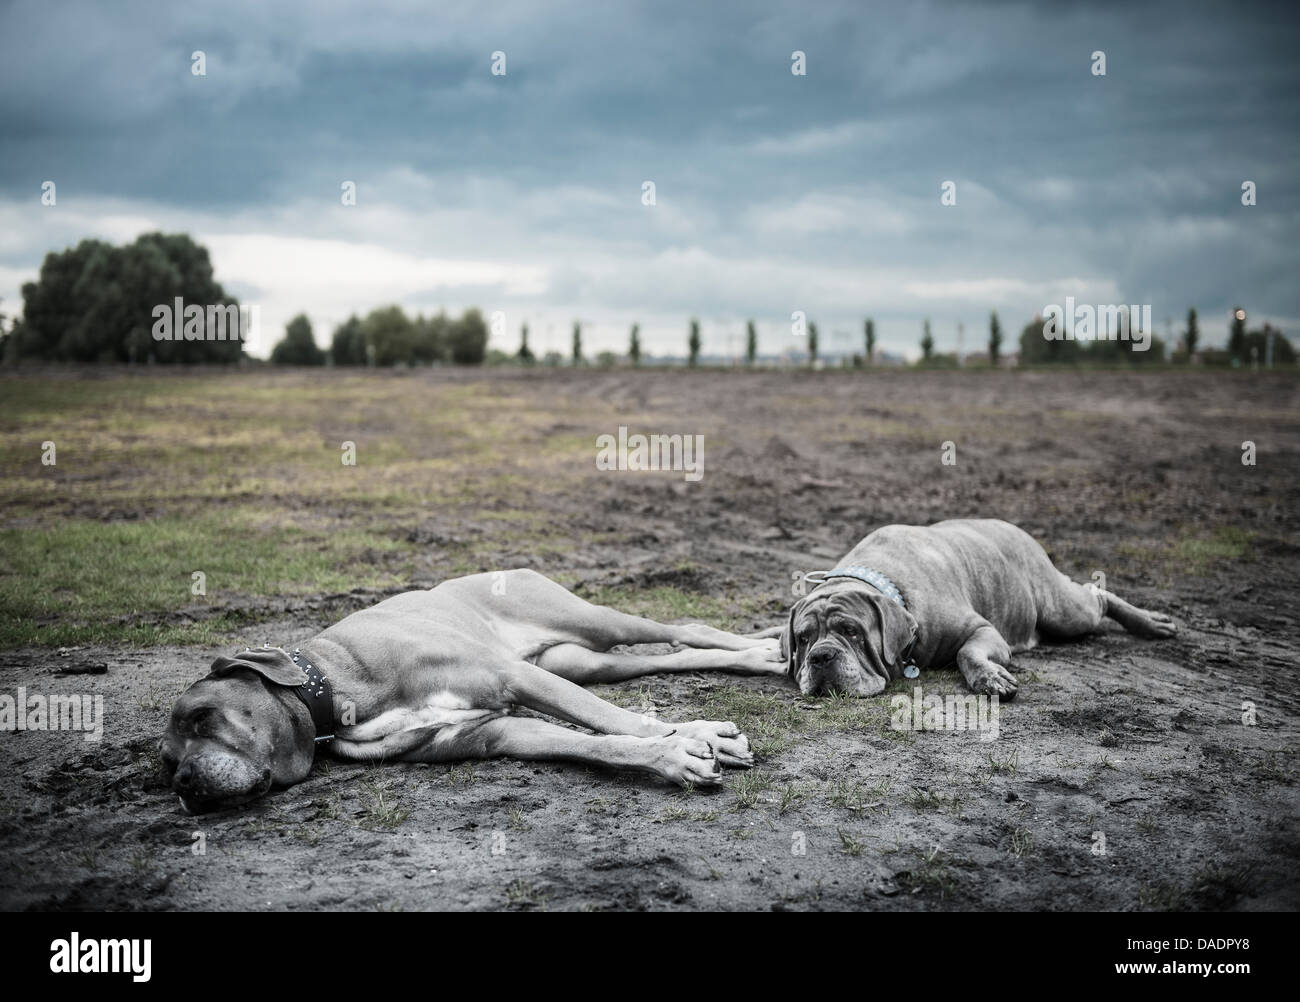 Two large grey dogs lying on wasteland - Stock Image